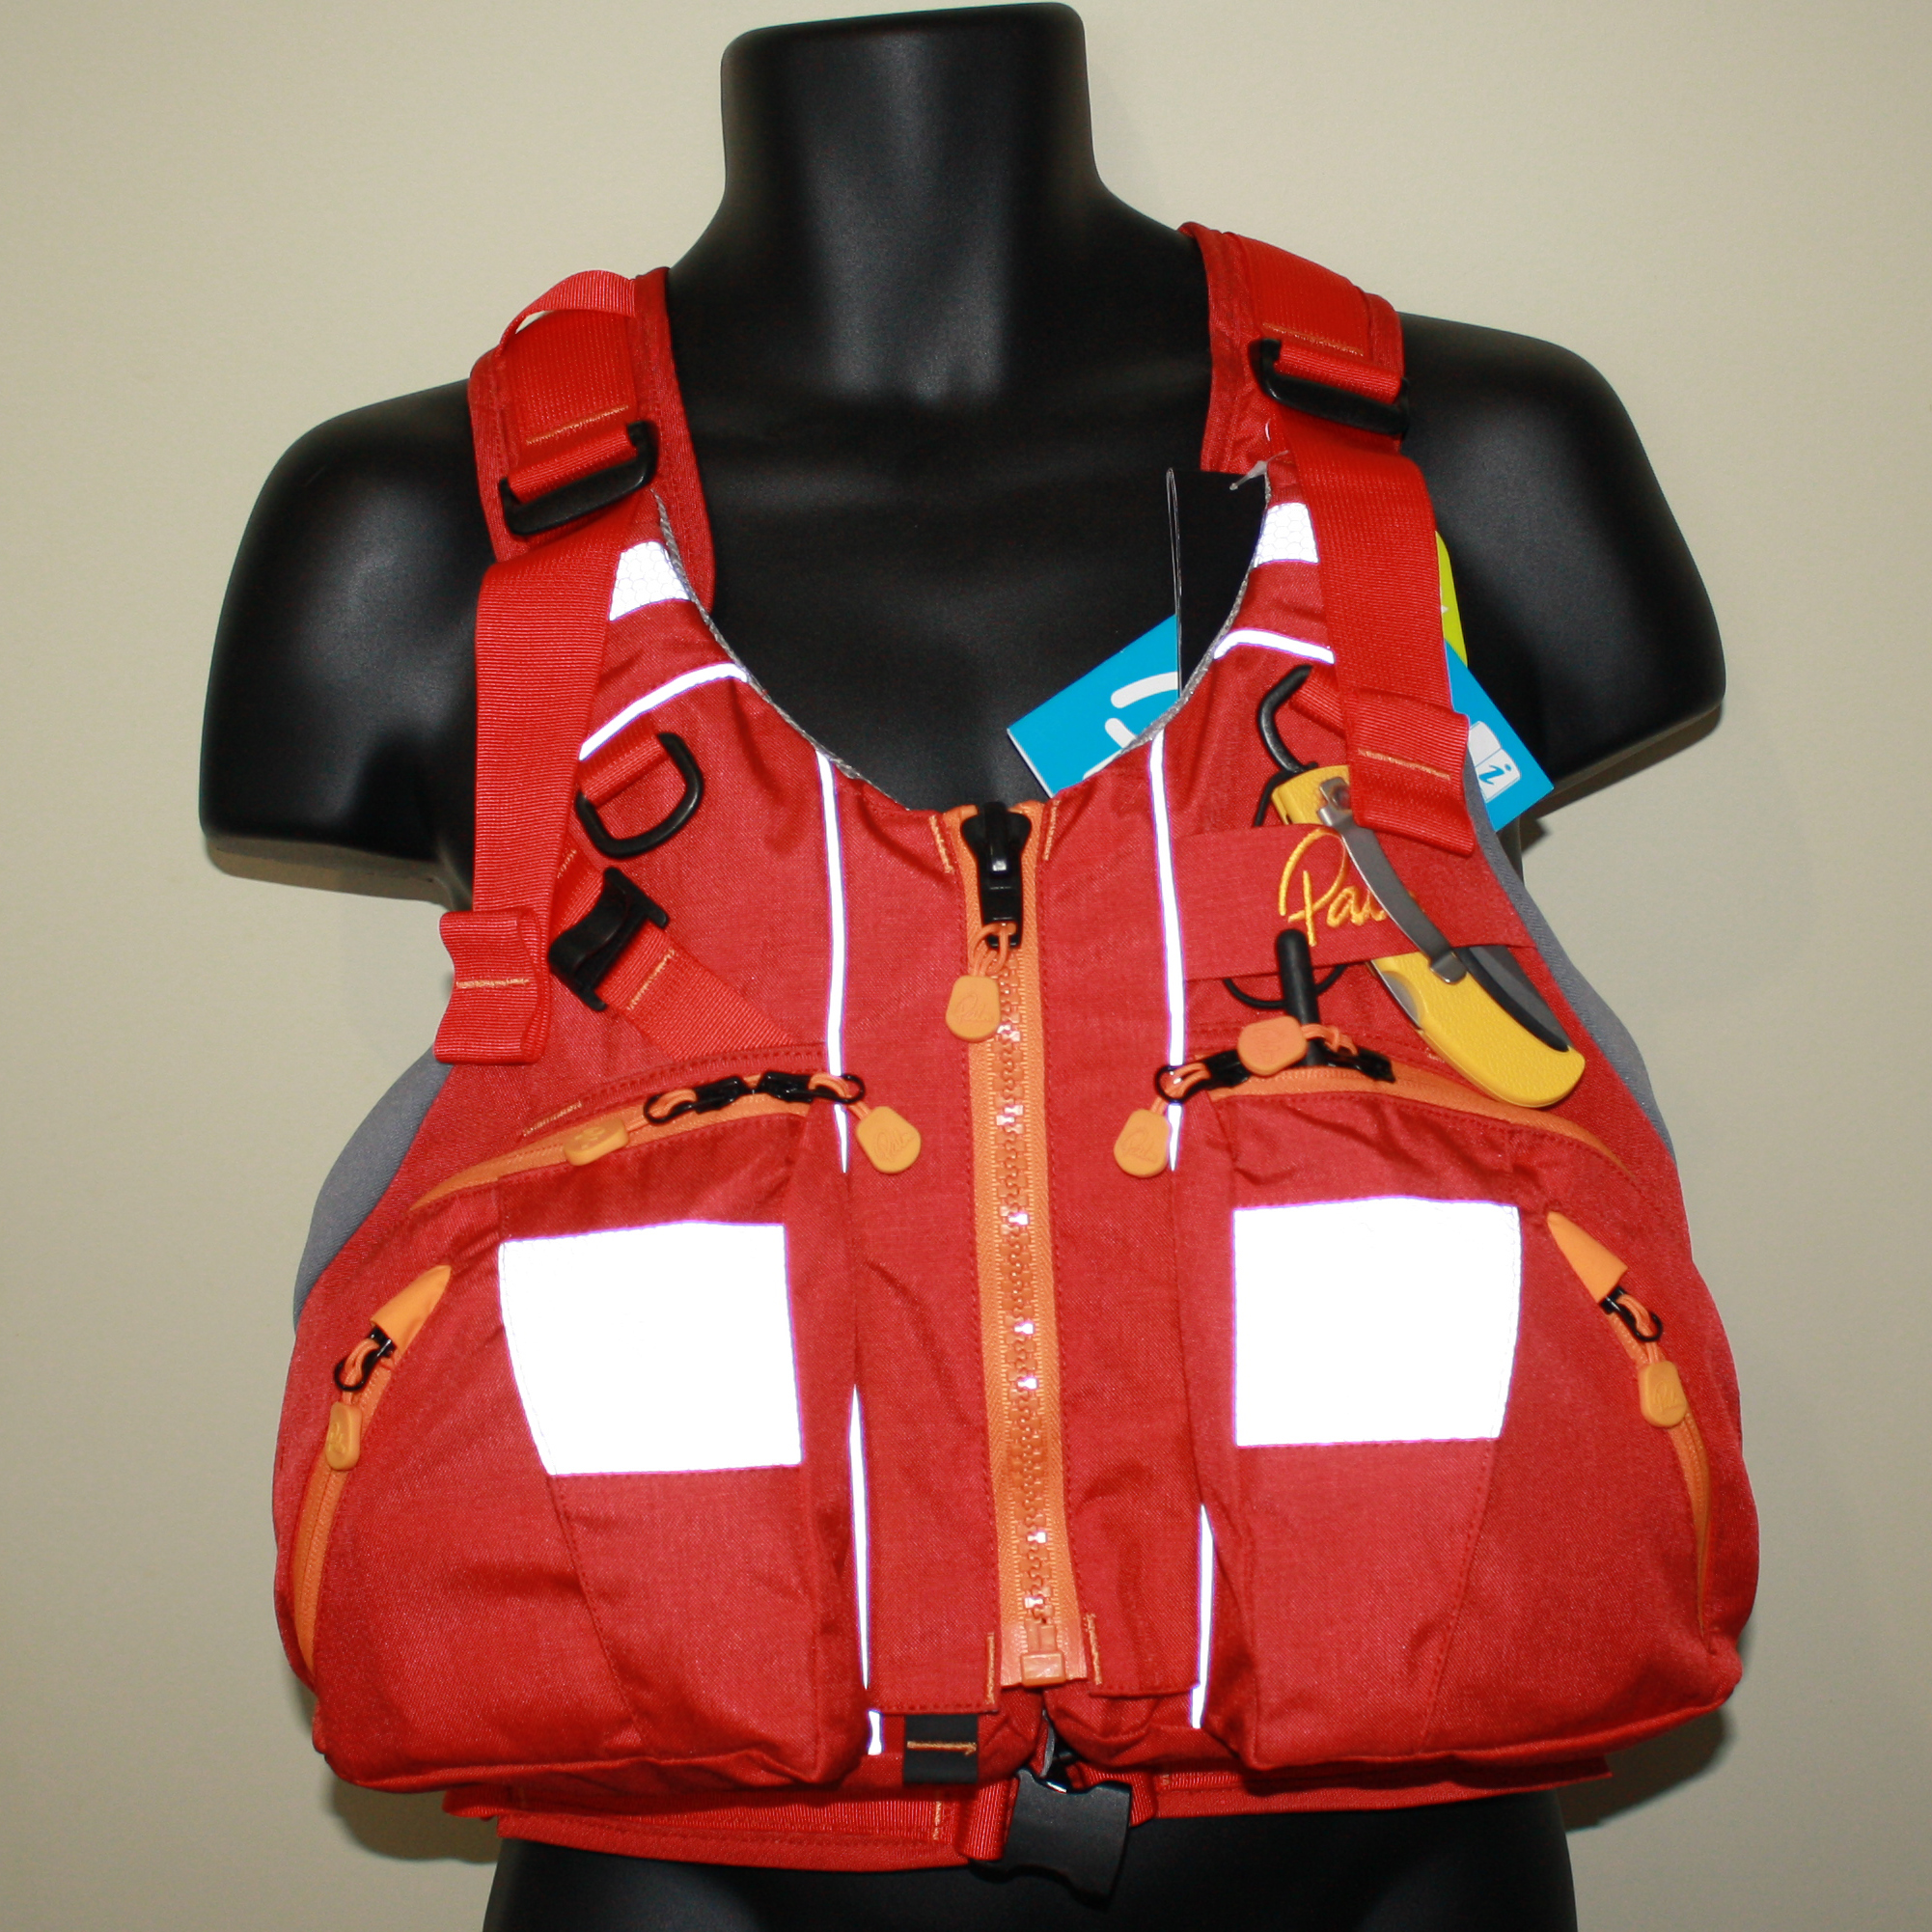 How much pocket space does a Palm Kaikoura PFD have?